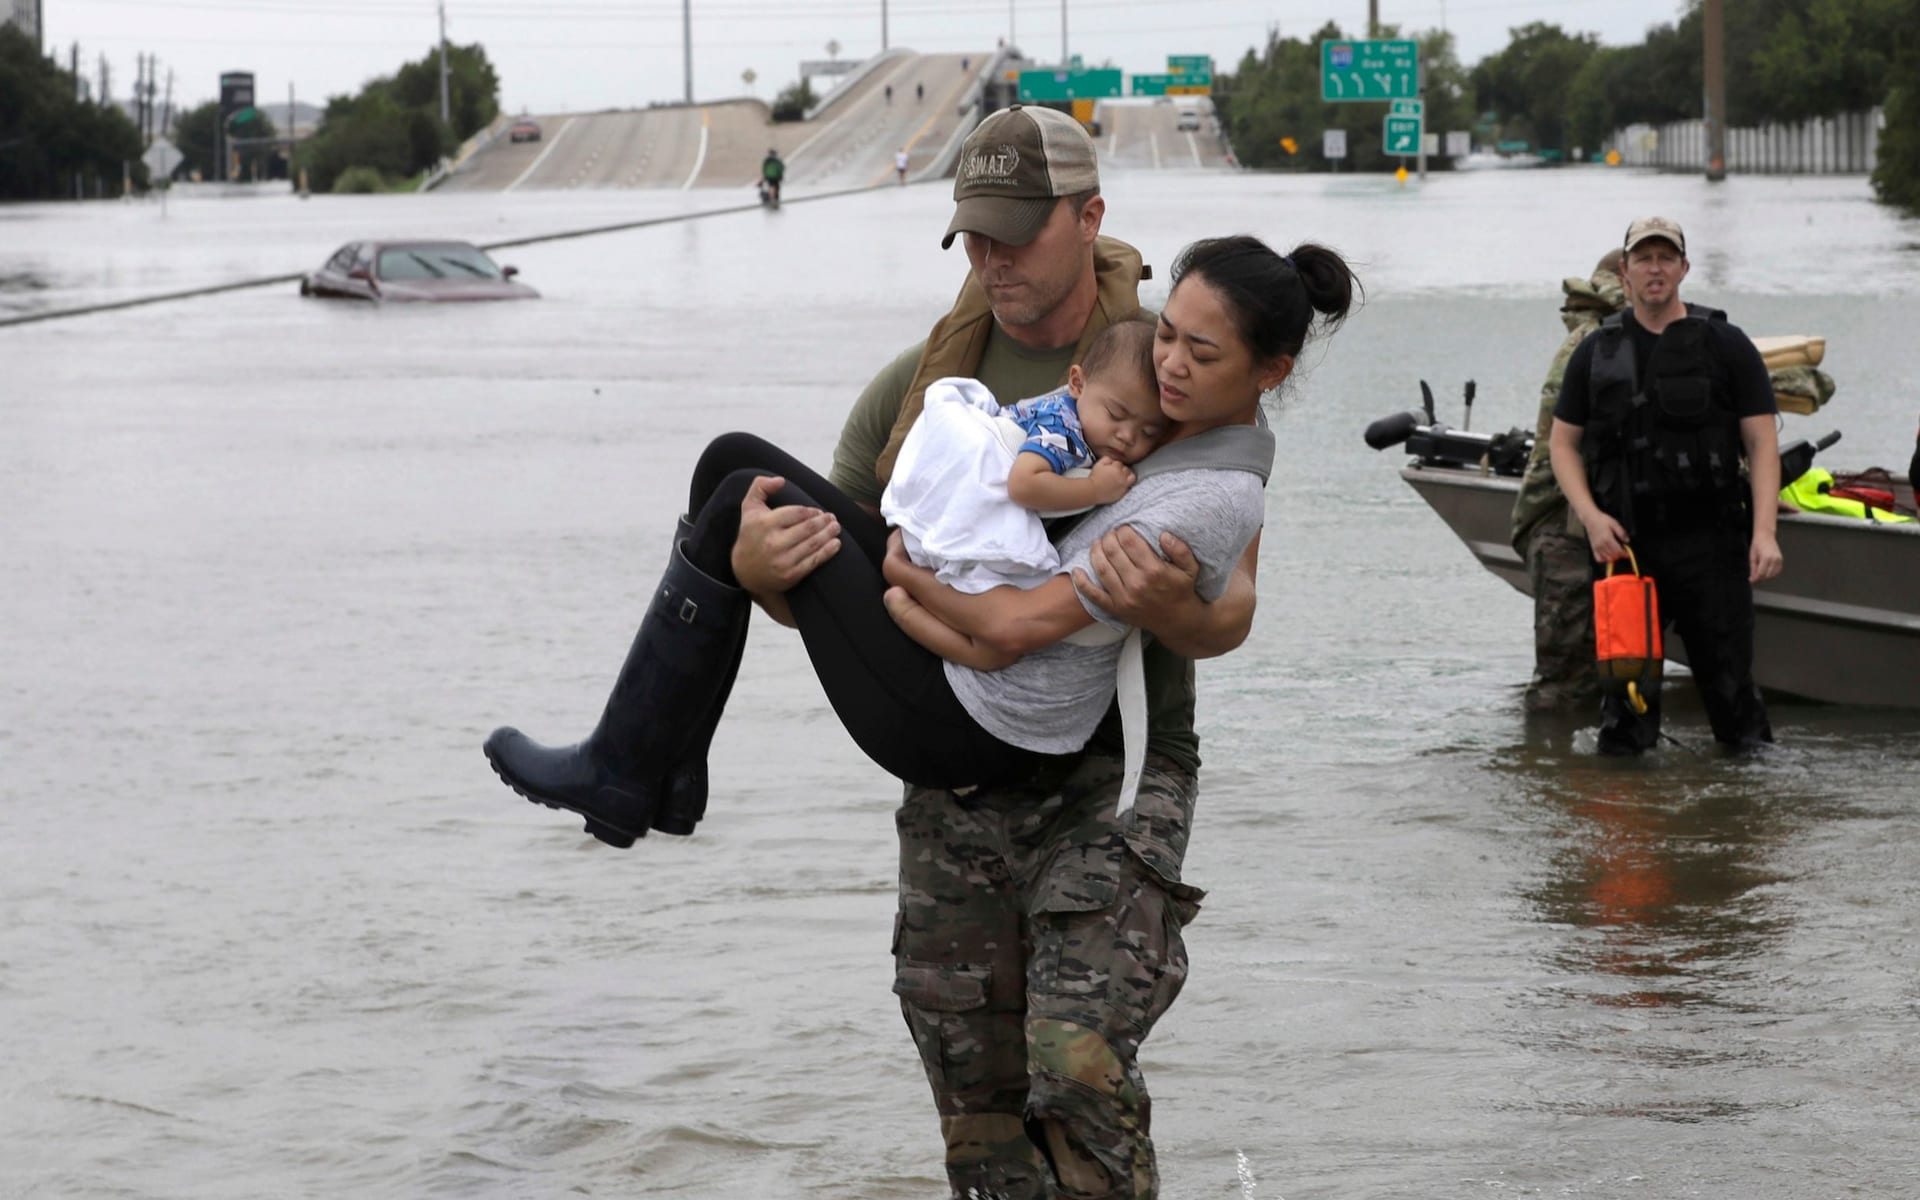 TEXANS' TRUE NATURE COMING OUT---AS TROPICAL STORM HARVEY CONTINUES TO DUMP RAIN